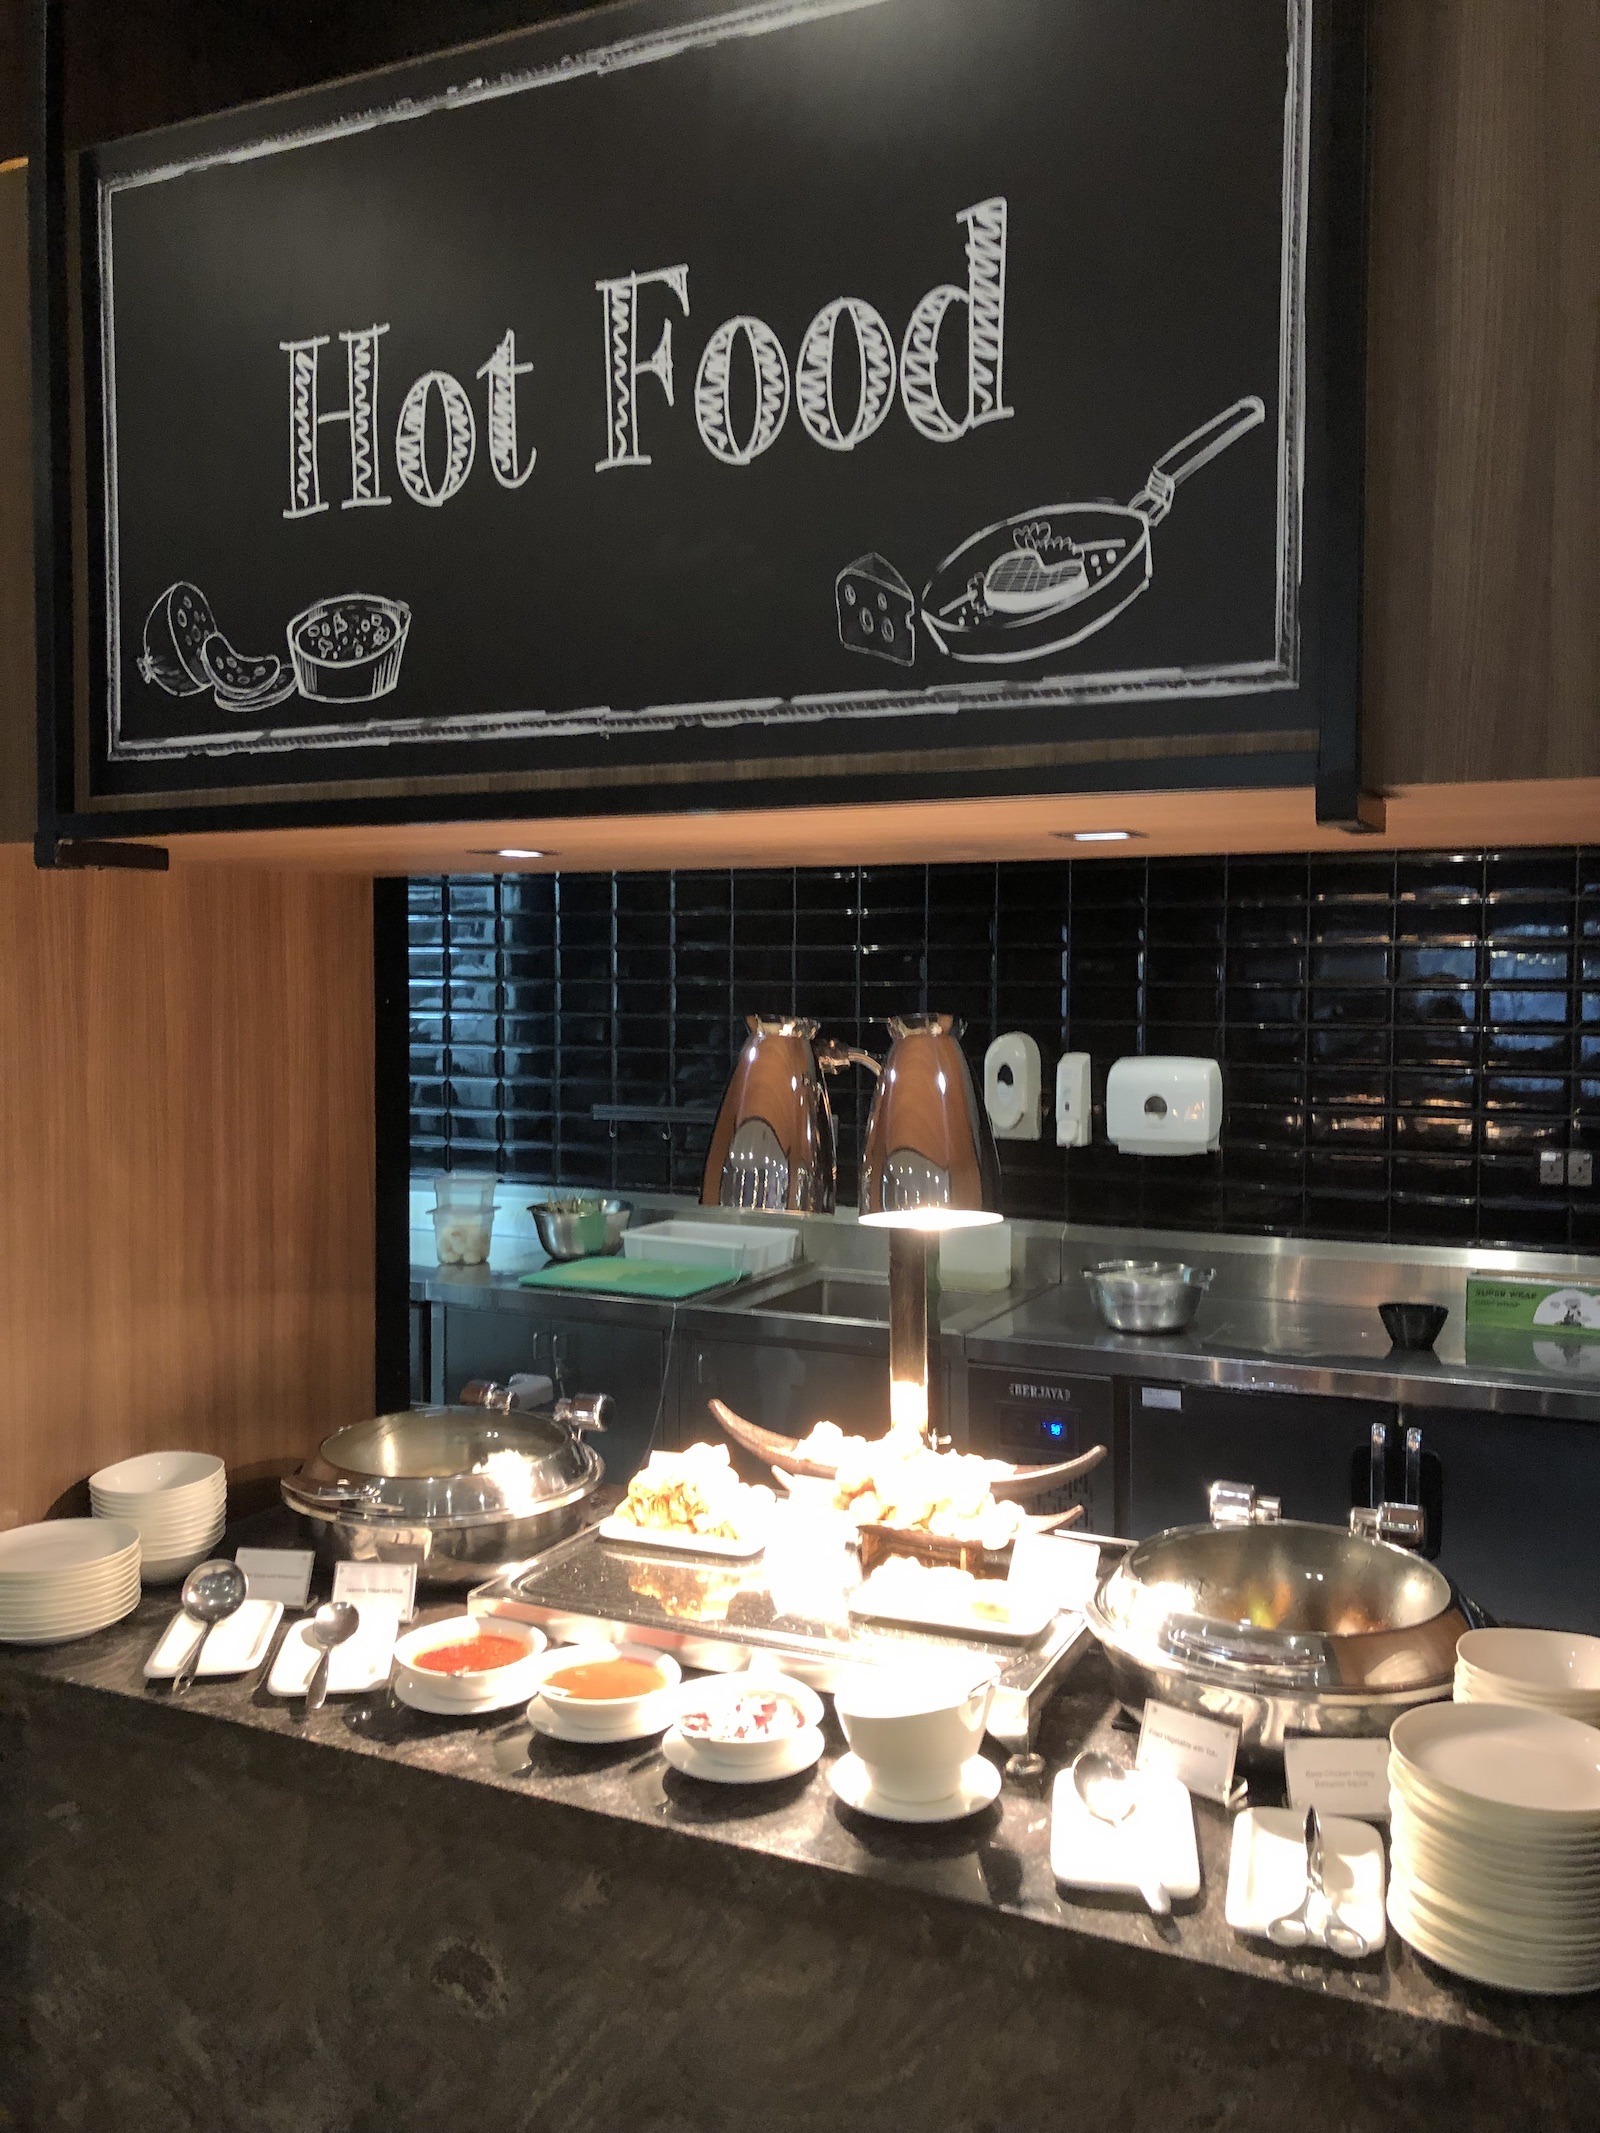 Hot food choices at Plaza Premium Lounge